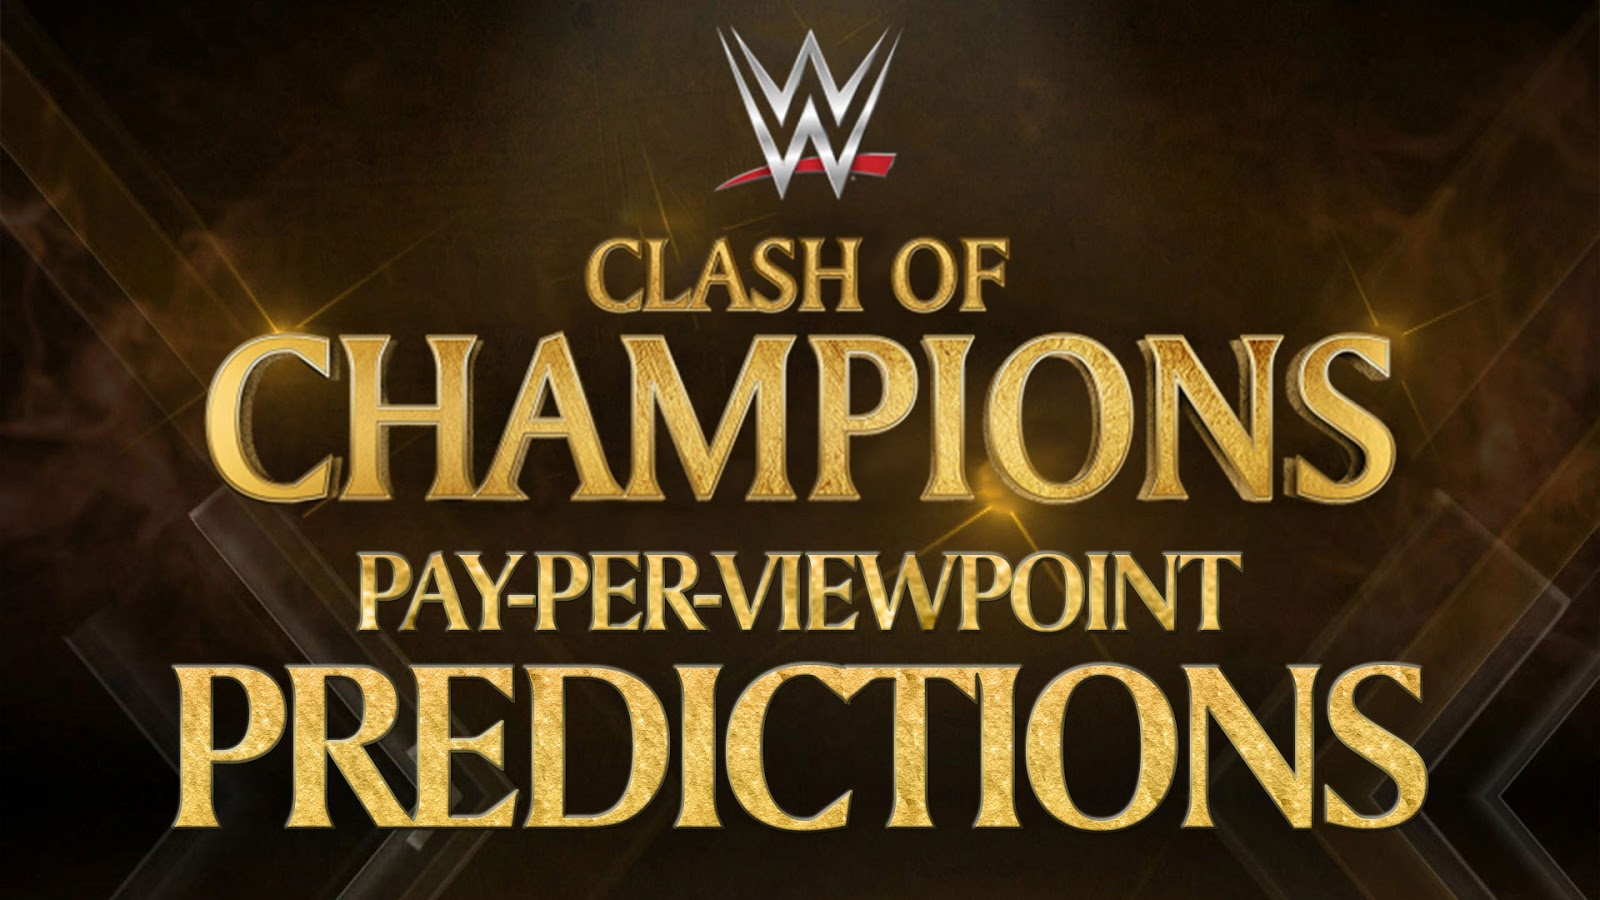 WWE Clash of Champions 2016 spoilers podcast